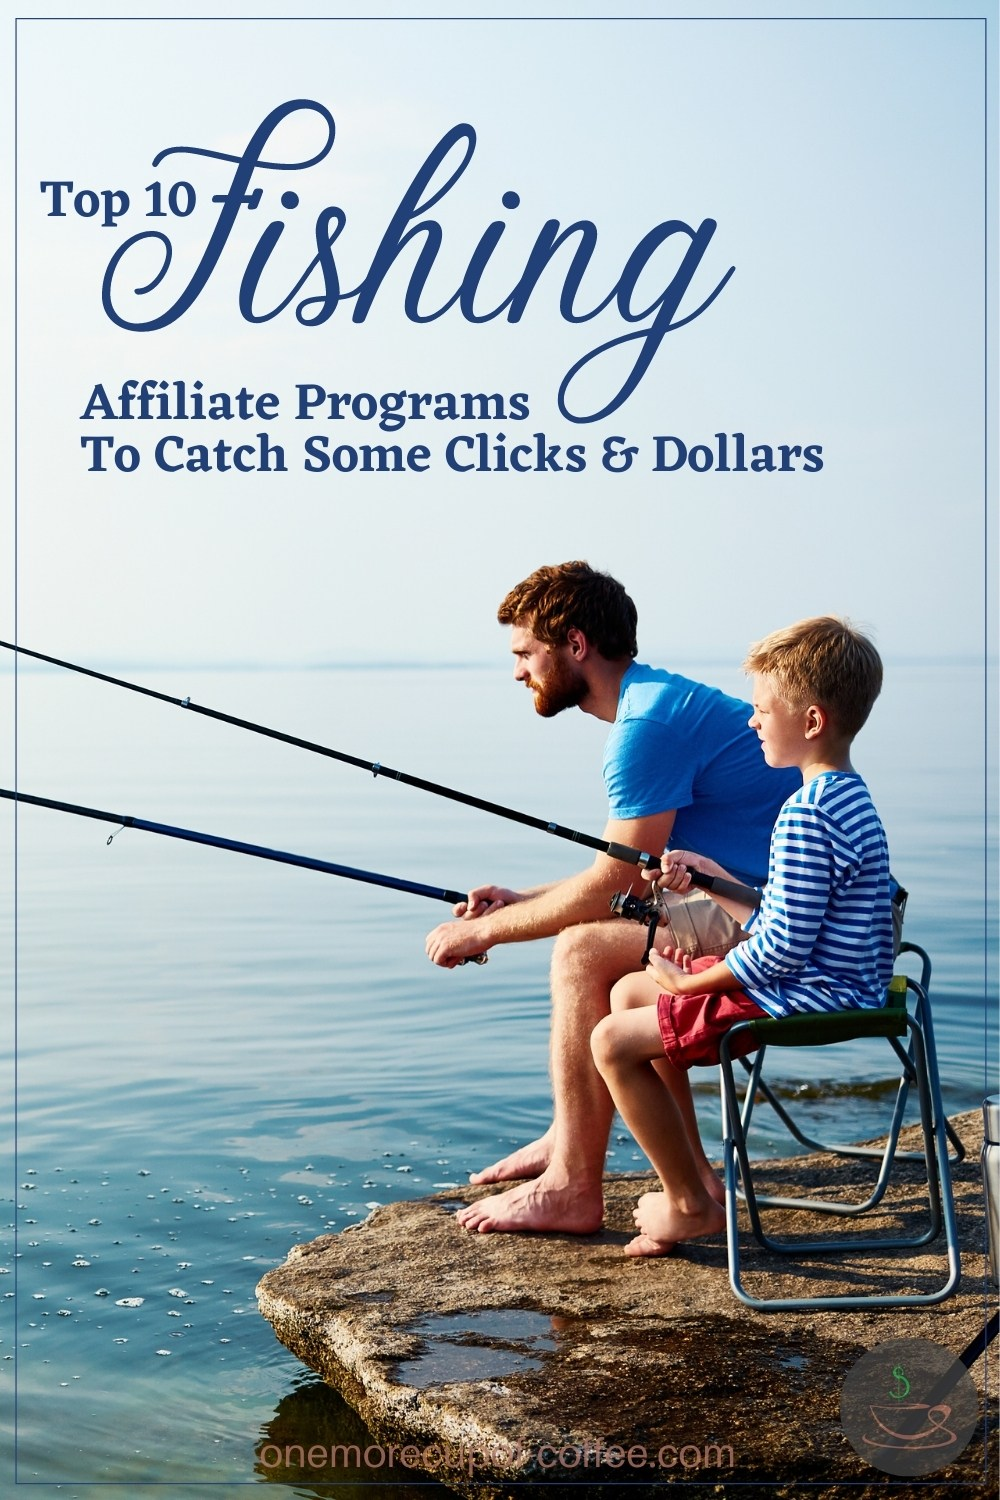 barefooted father and son on a rock ledge fishing, with text overlay